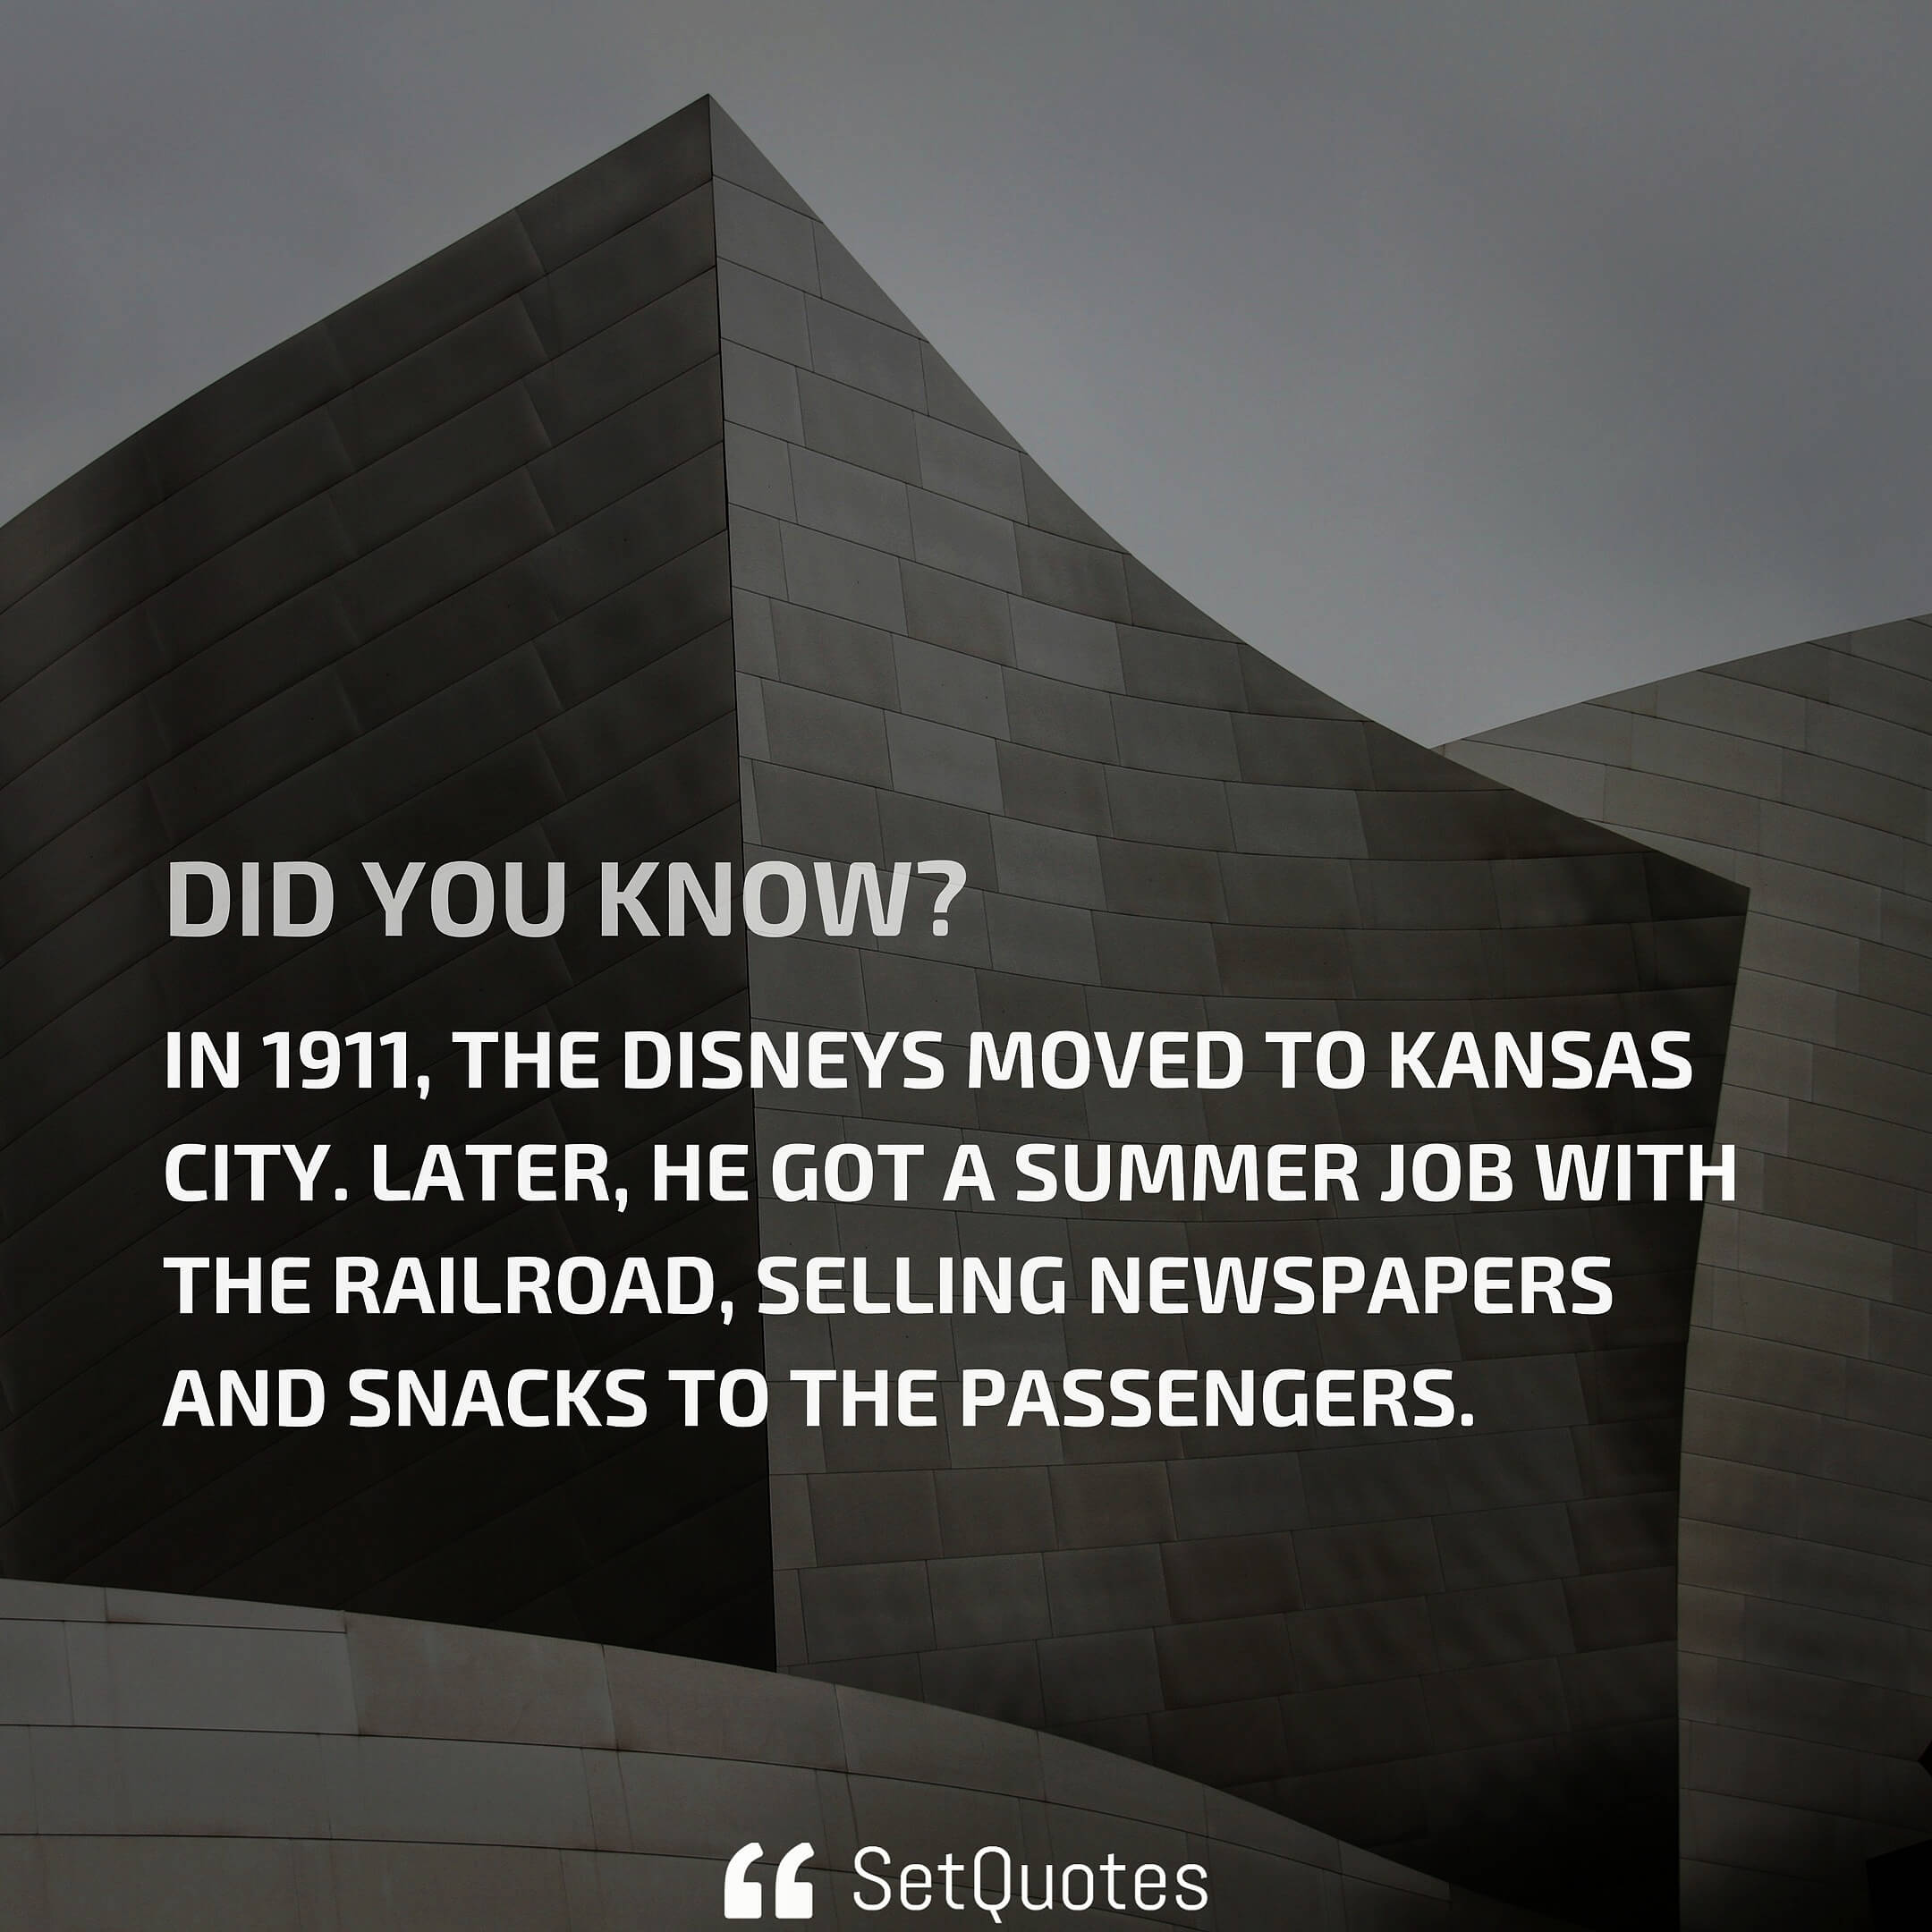 In 1911, the disneys moved to kansas city. Later, he got a summer job with the railroad, selling newspapers and snacks to the passengers